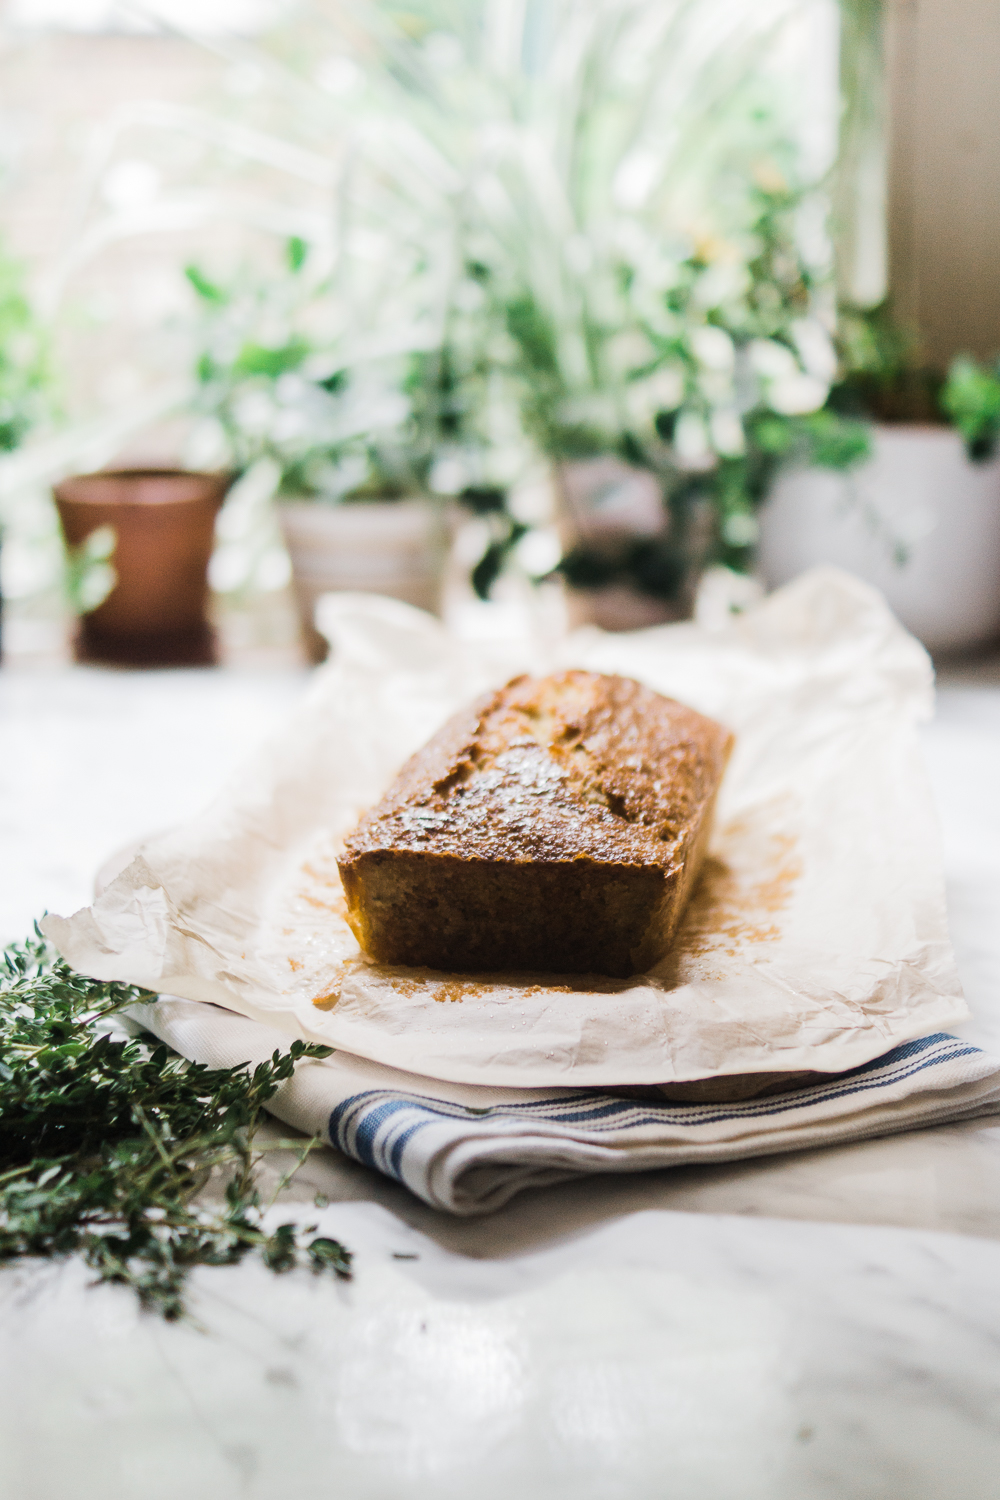 lemon-thyme-courgette-cake-recipe-food-photography